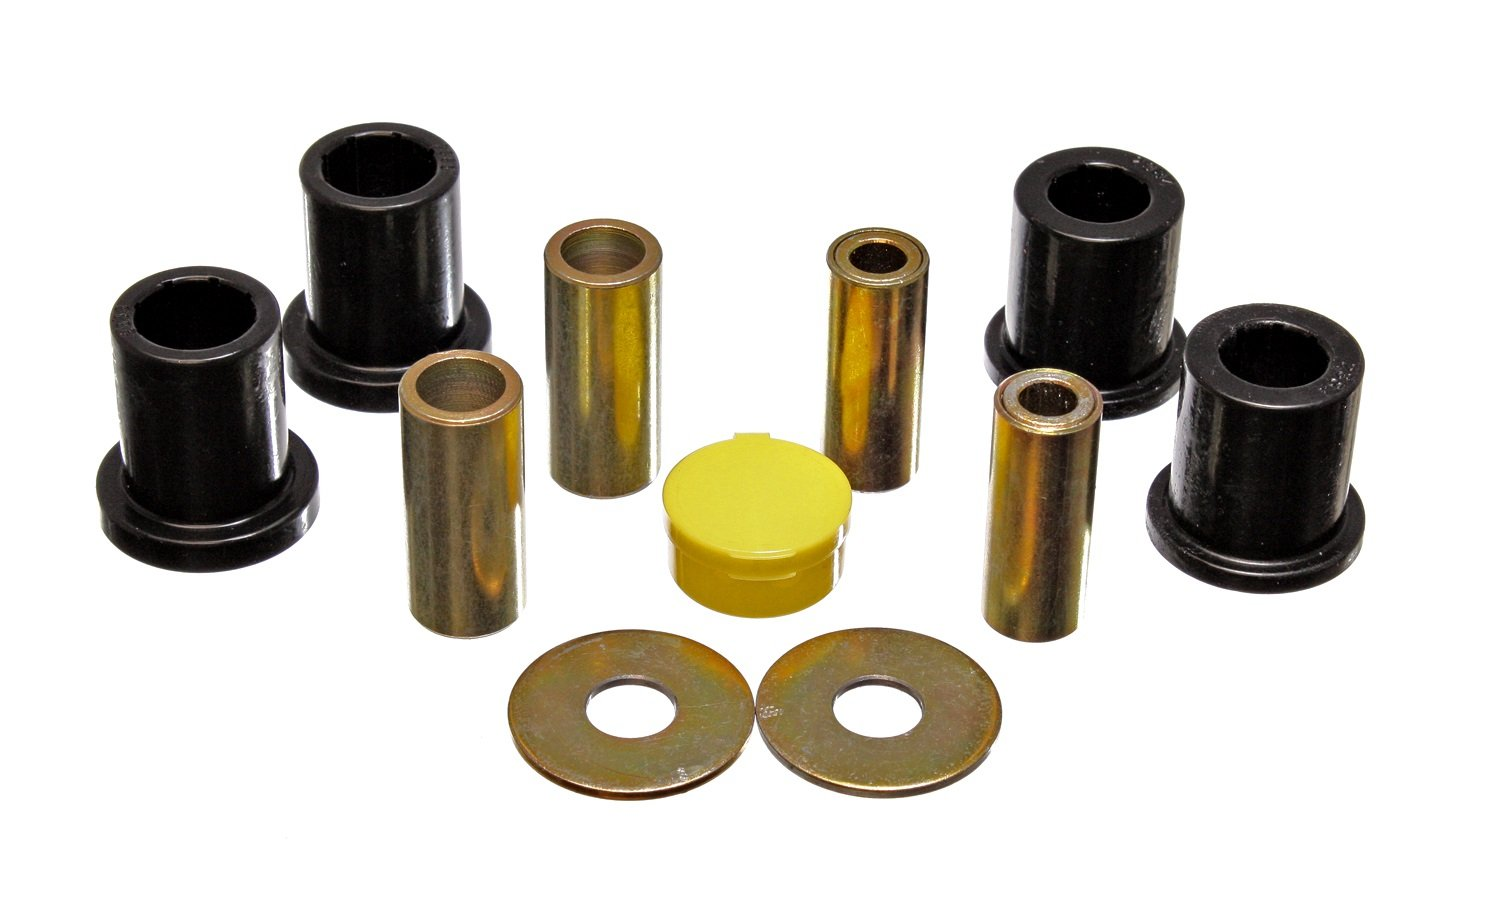 Energy Suspension 4.3152G Front Control Arm Bushing Set for Ford Escort